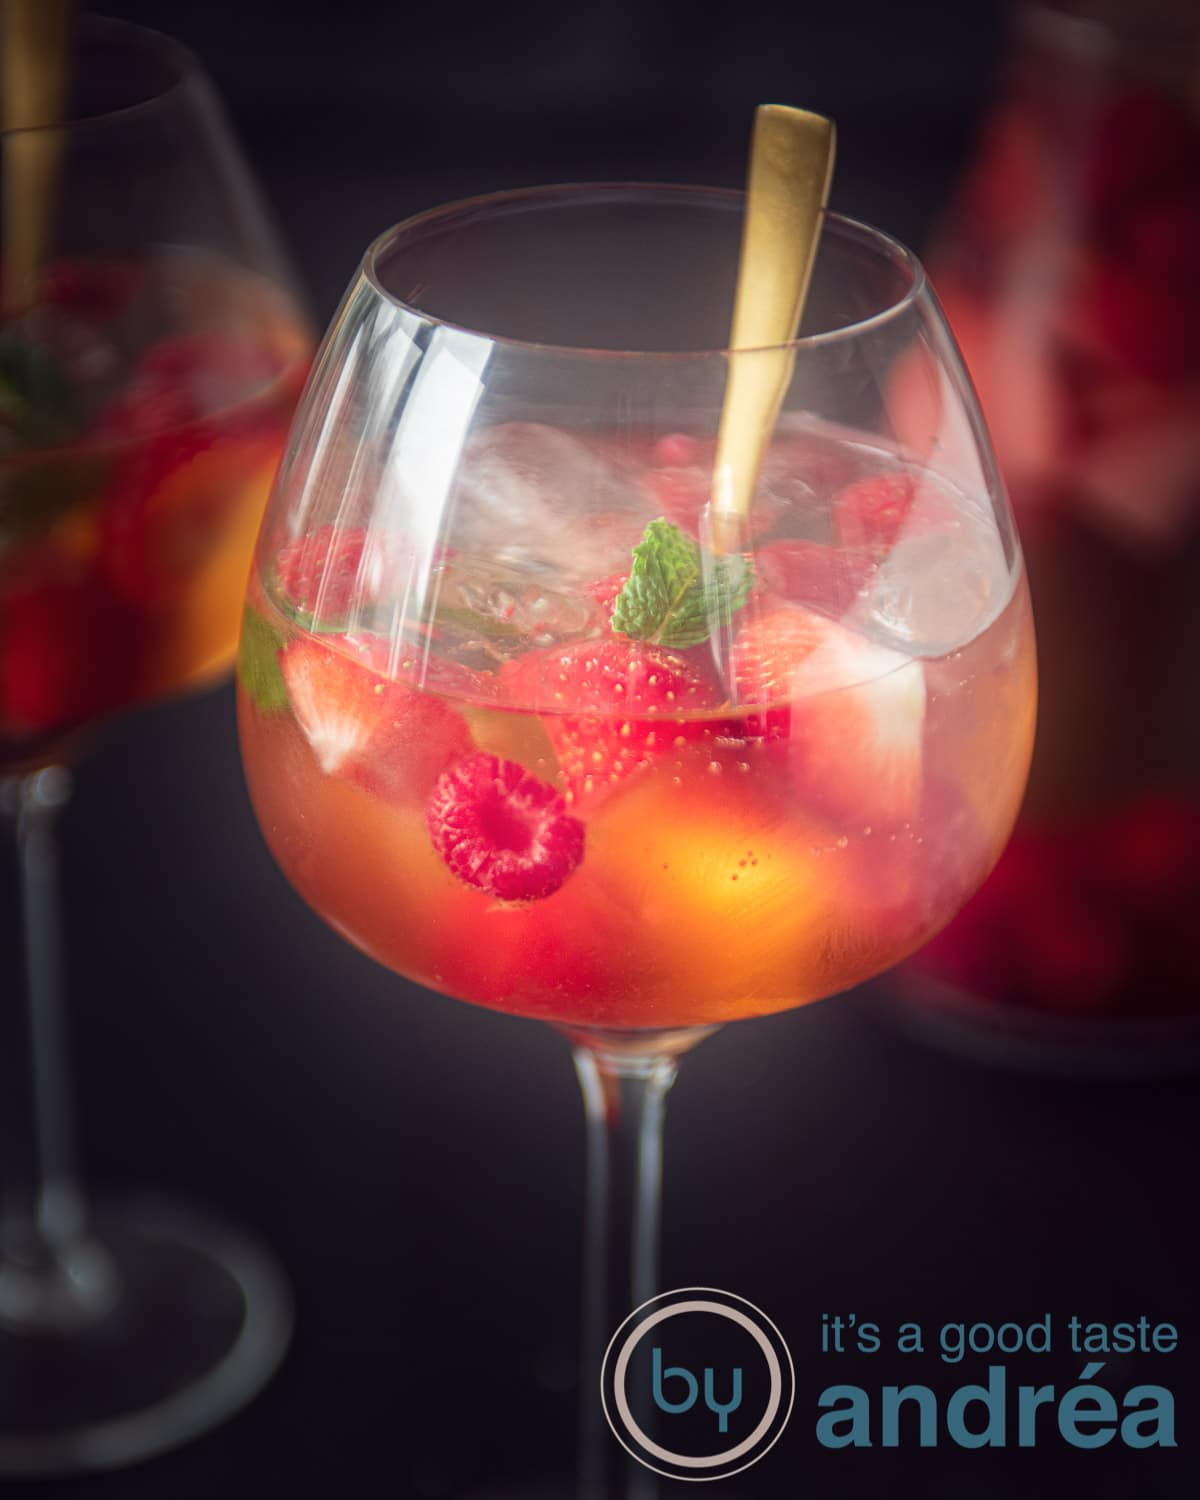 A glass filled with white sangria 43 on a black background. A jar and another glass are in the background